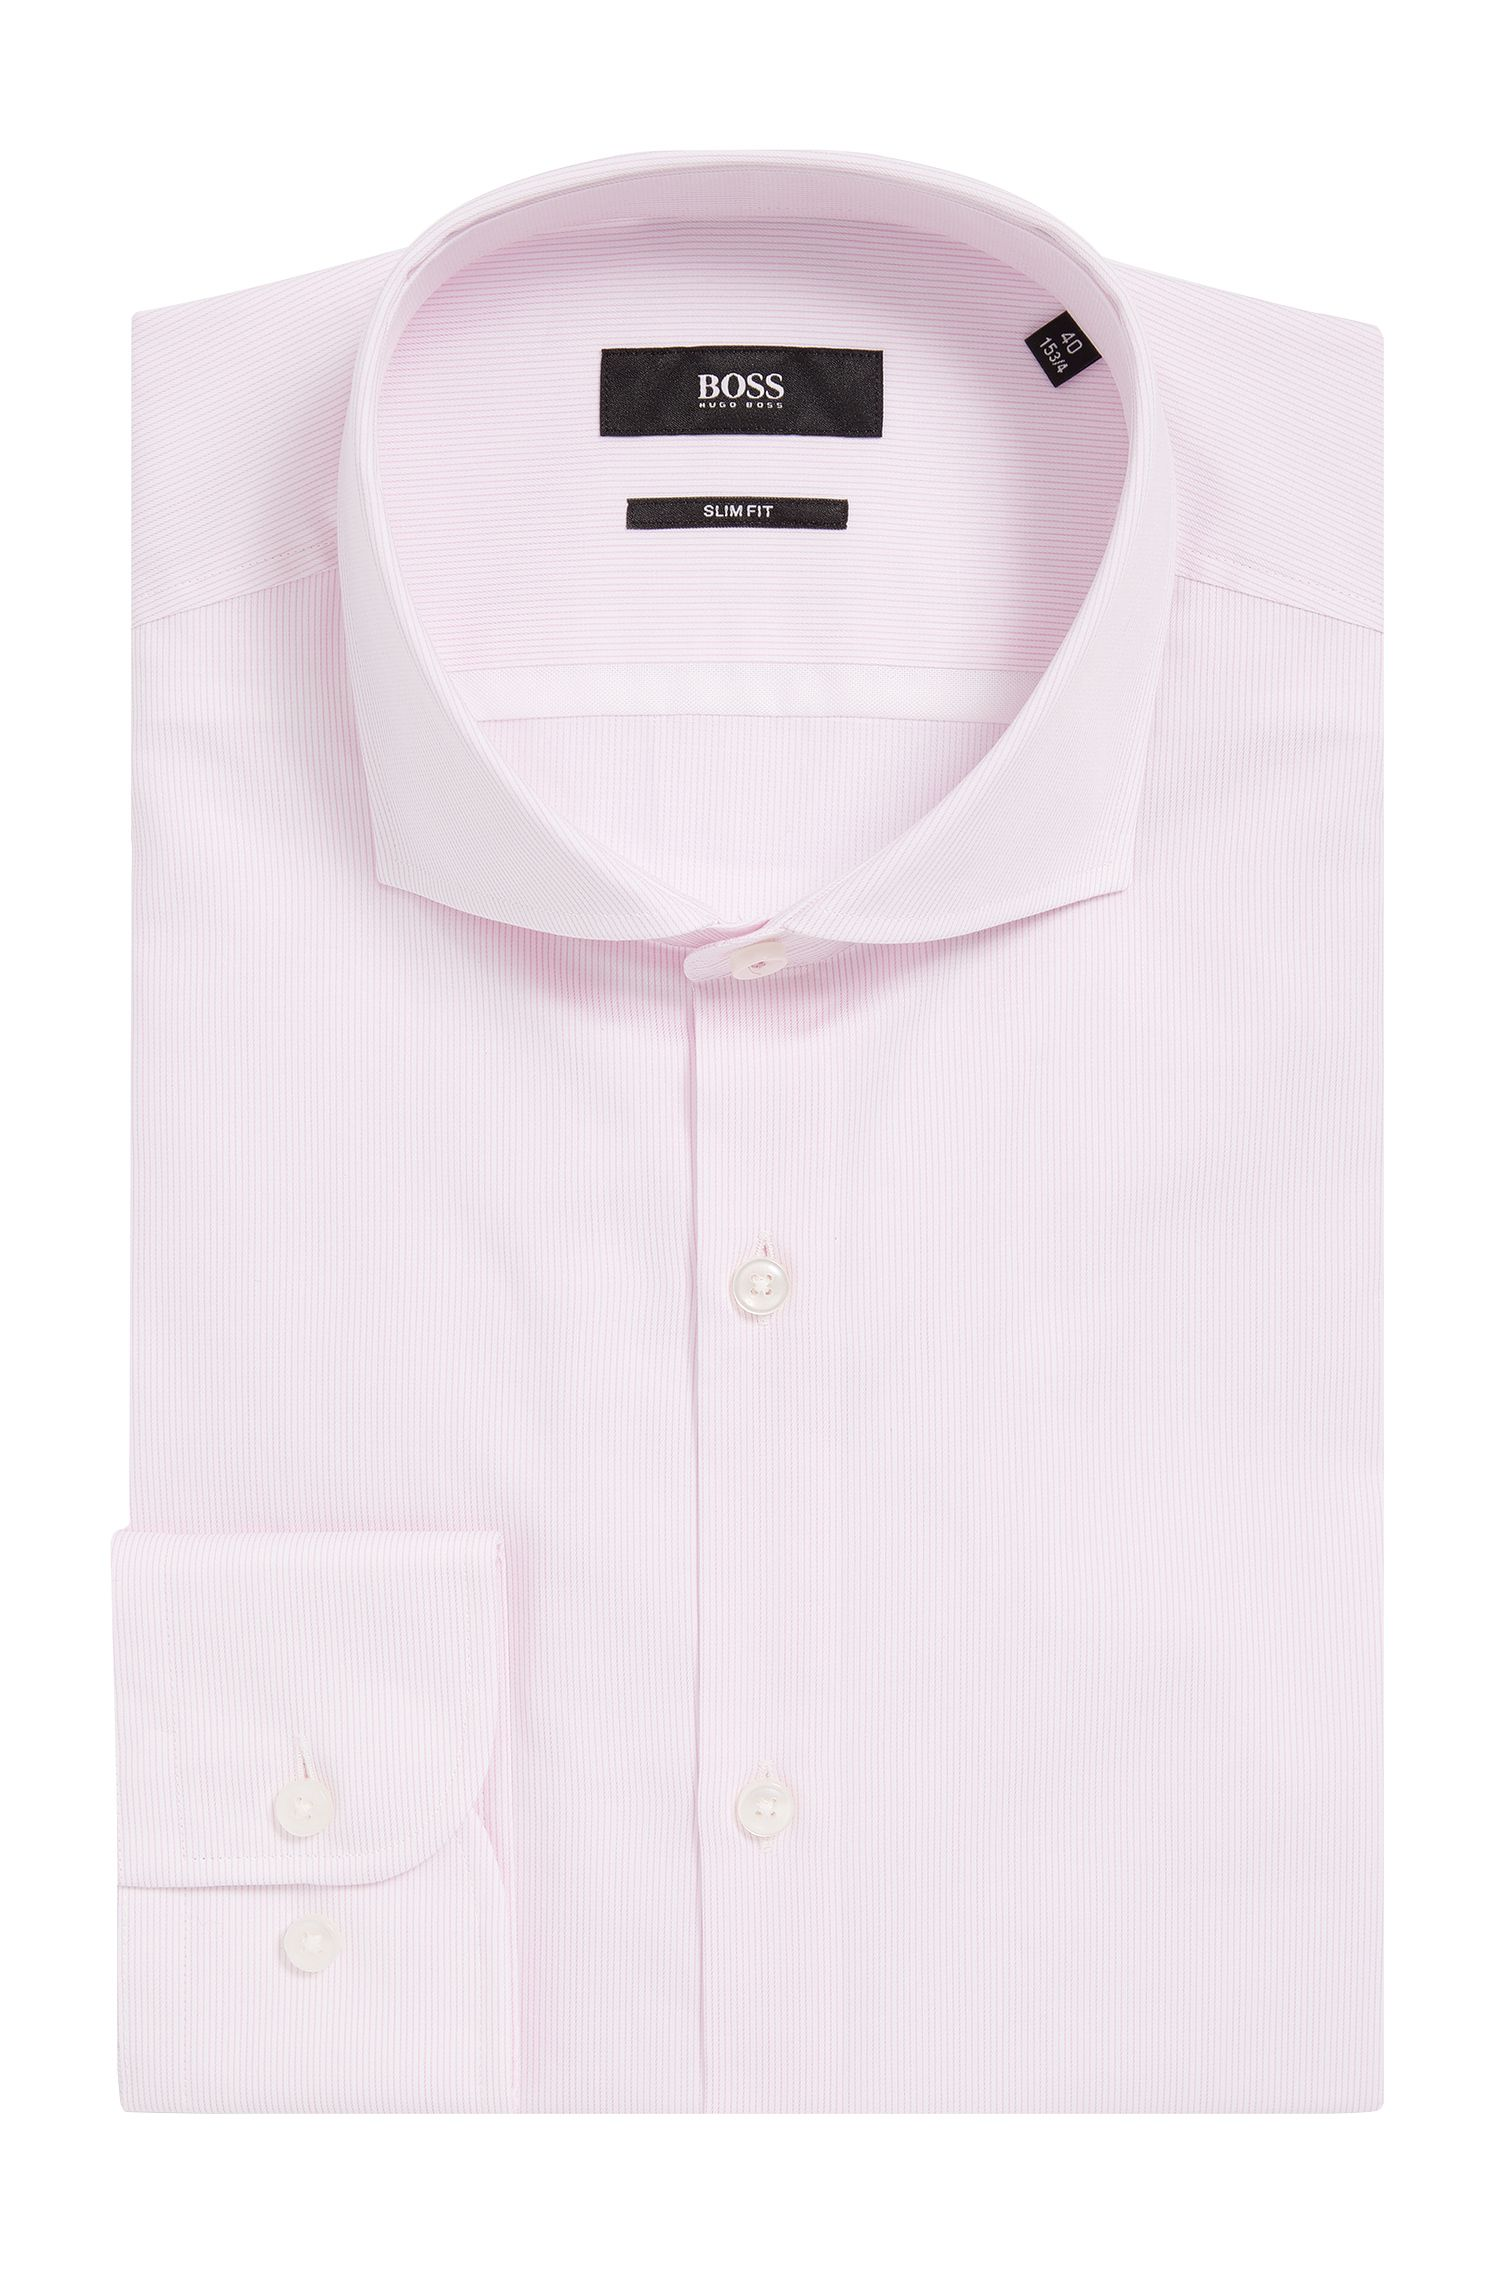 Striped Cotton Dress Shirt, Slim Fit | Jerrin